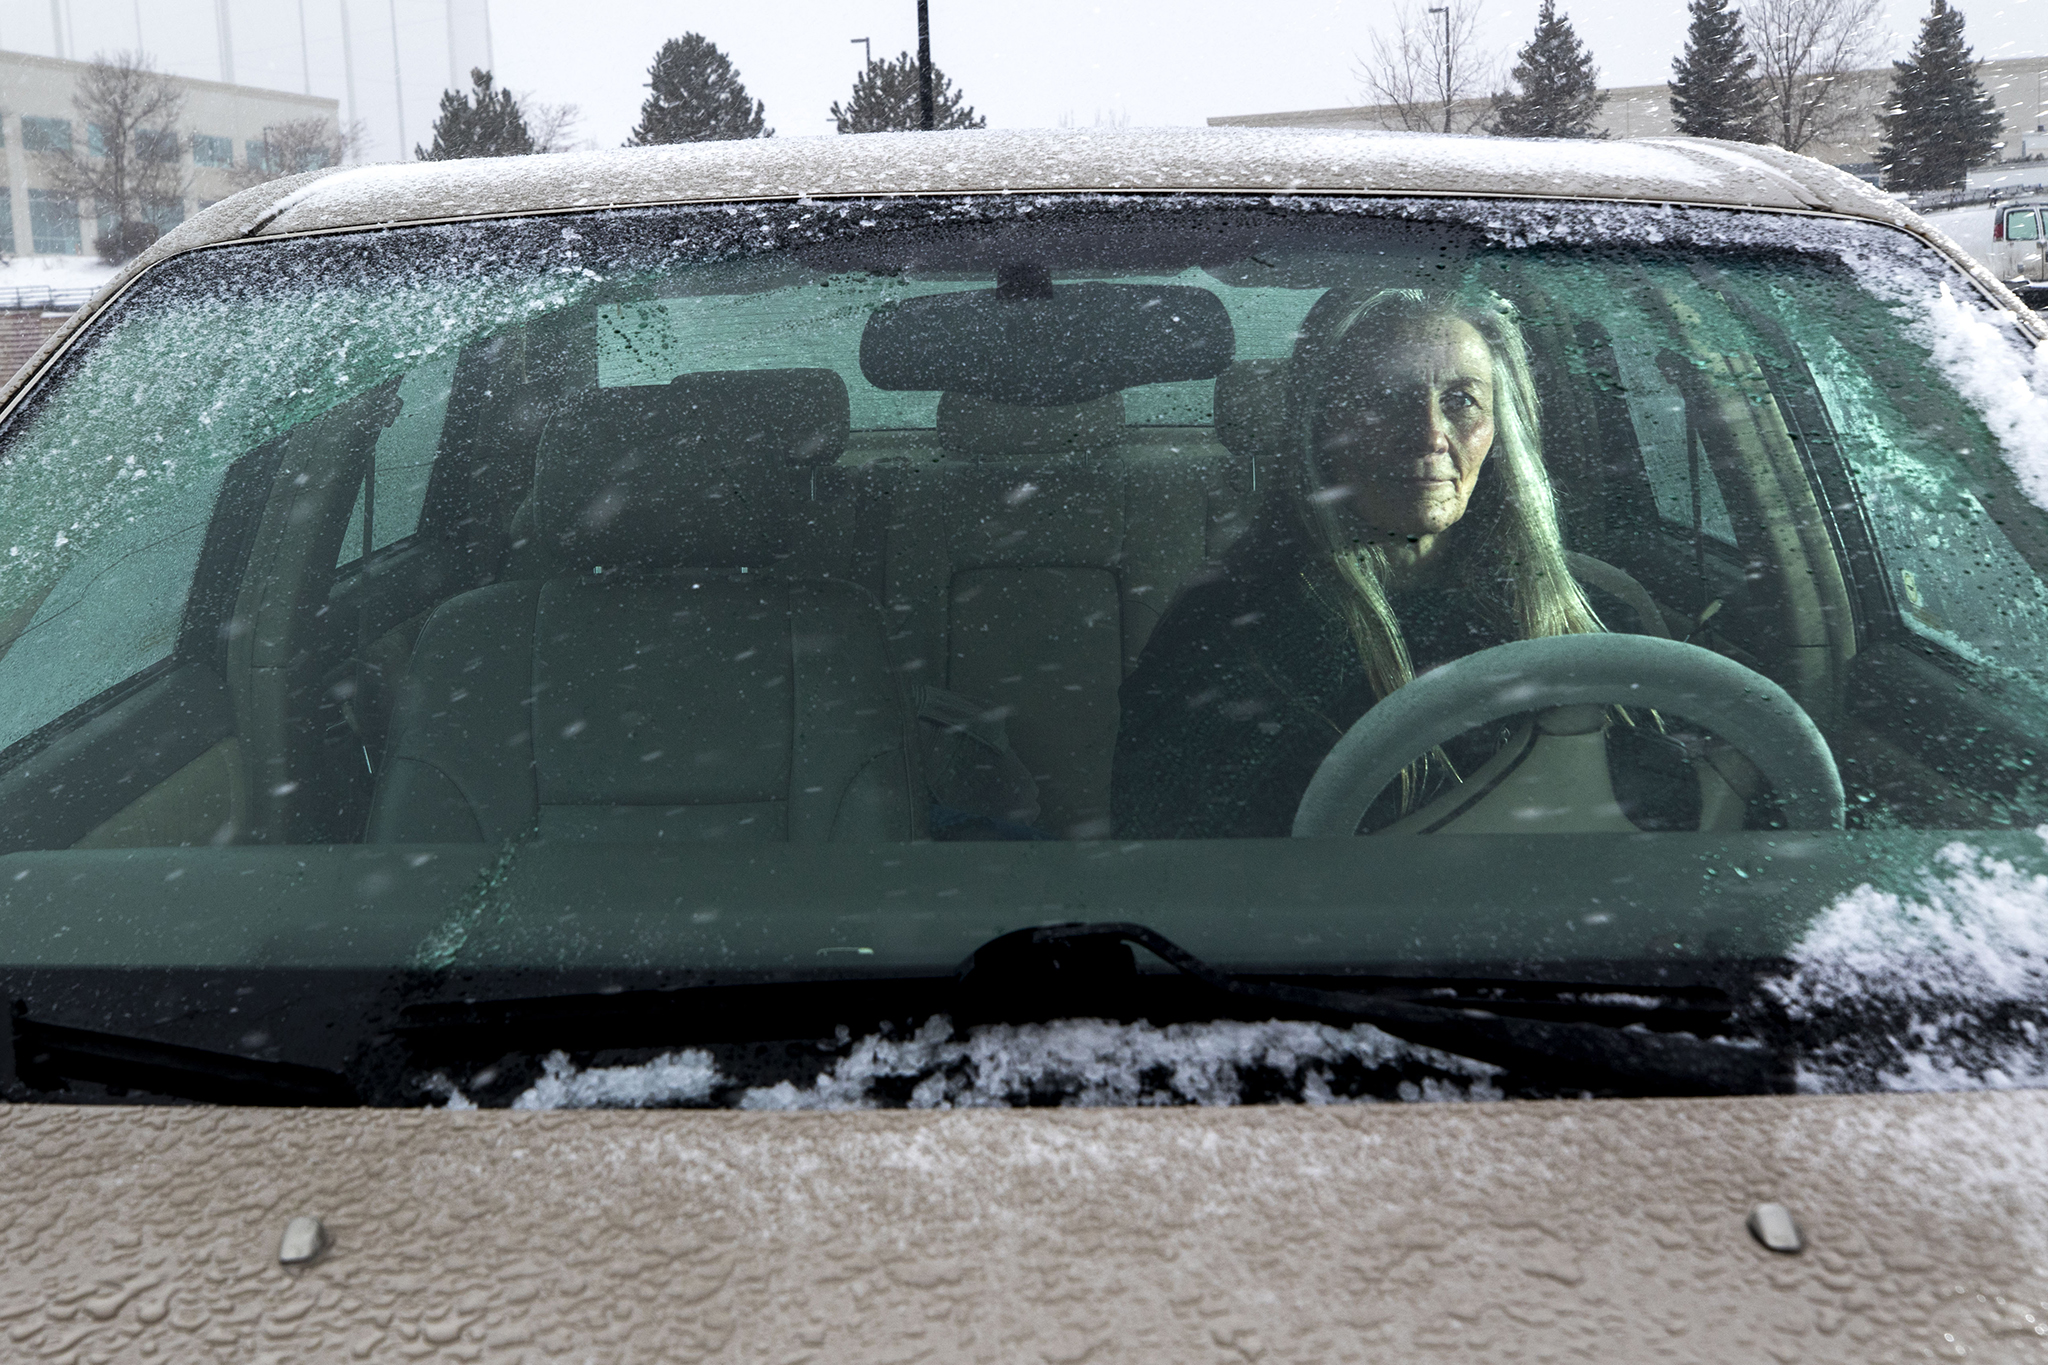 Sue Sanders poses for a portrait inside her car, where she sleeps at night in this Centennial Walmart parking lot, Feb. 19, 2020. (Kevin J. Beaty/Denverite)